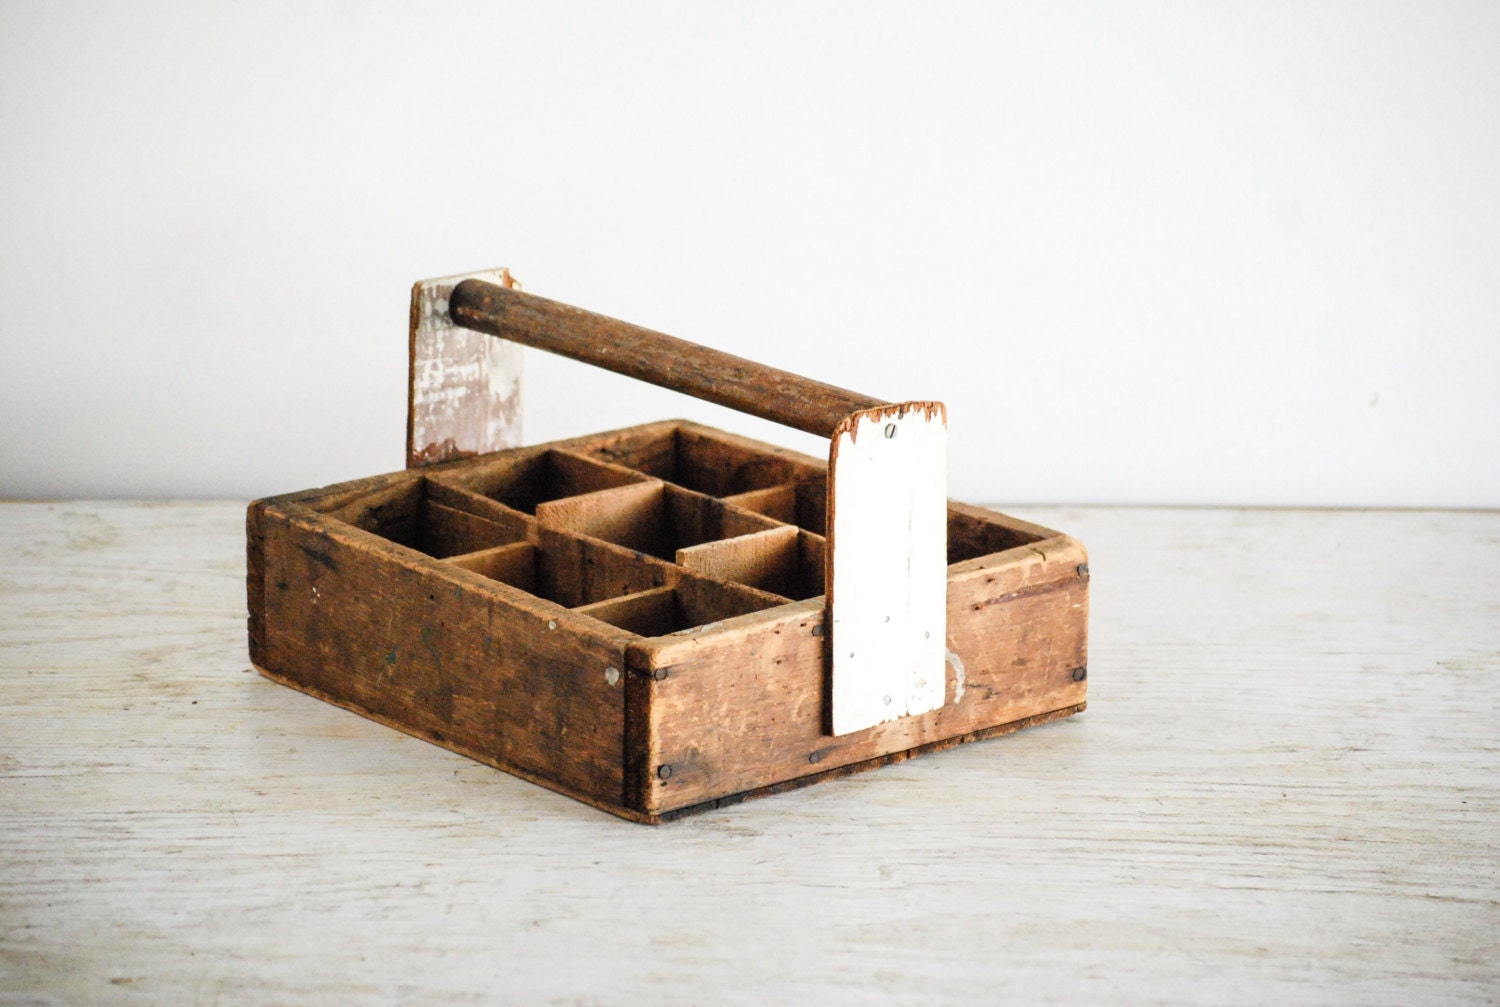 Wood Caddy Wooden Tool Box Caddy Tote Wood Box With Handle